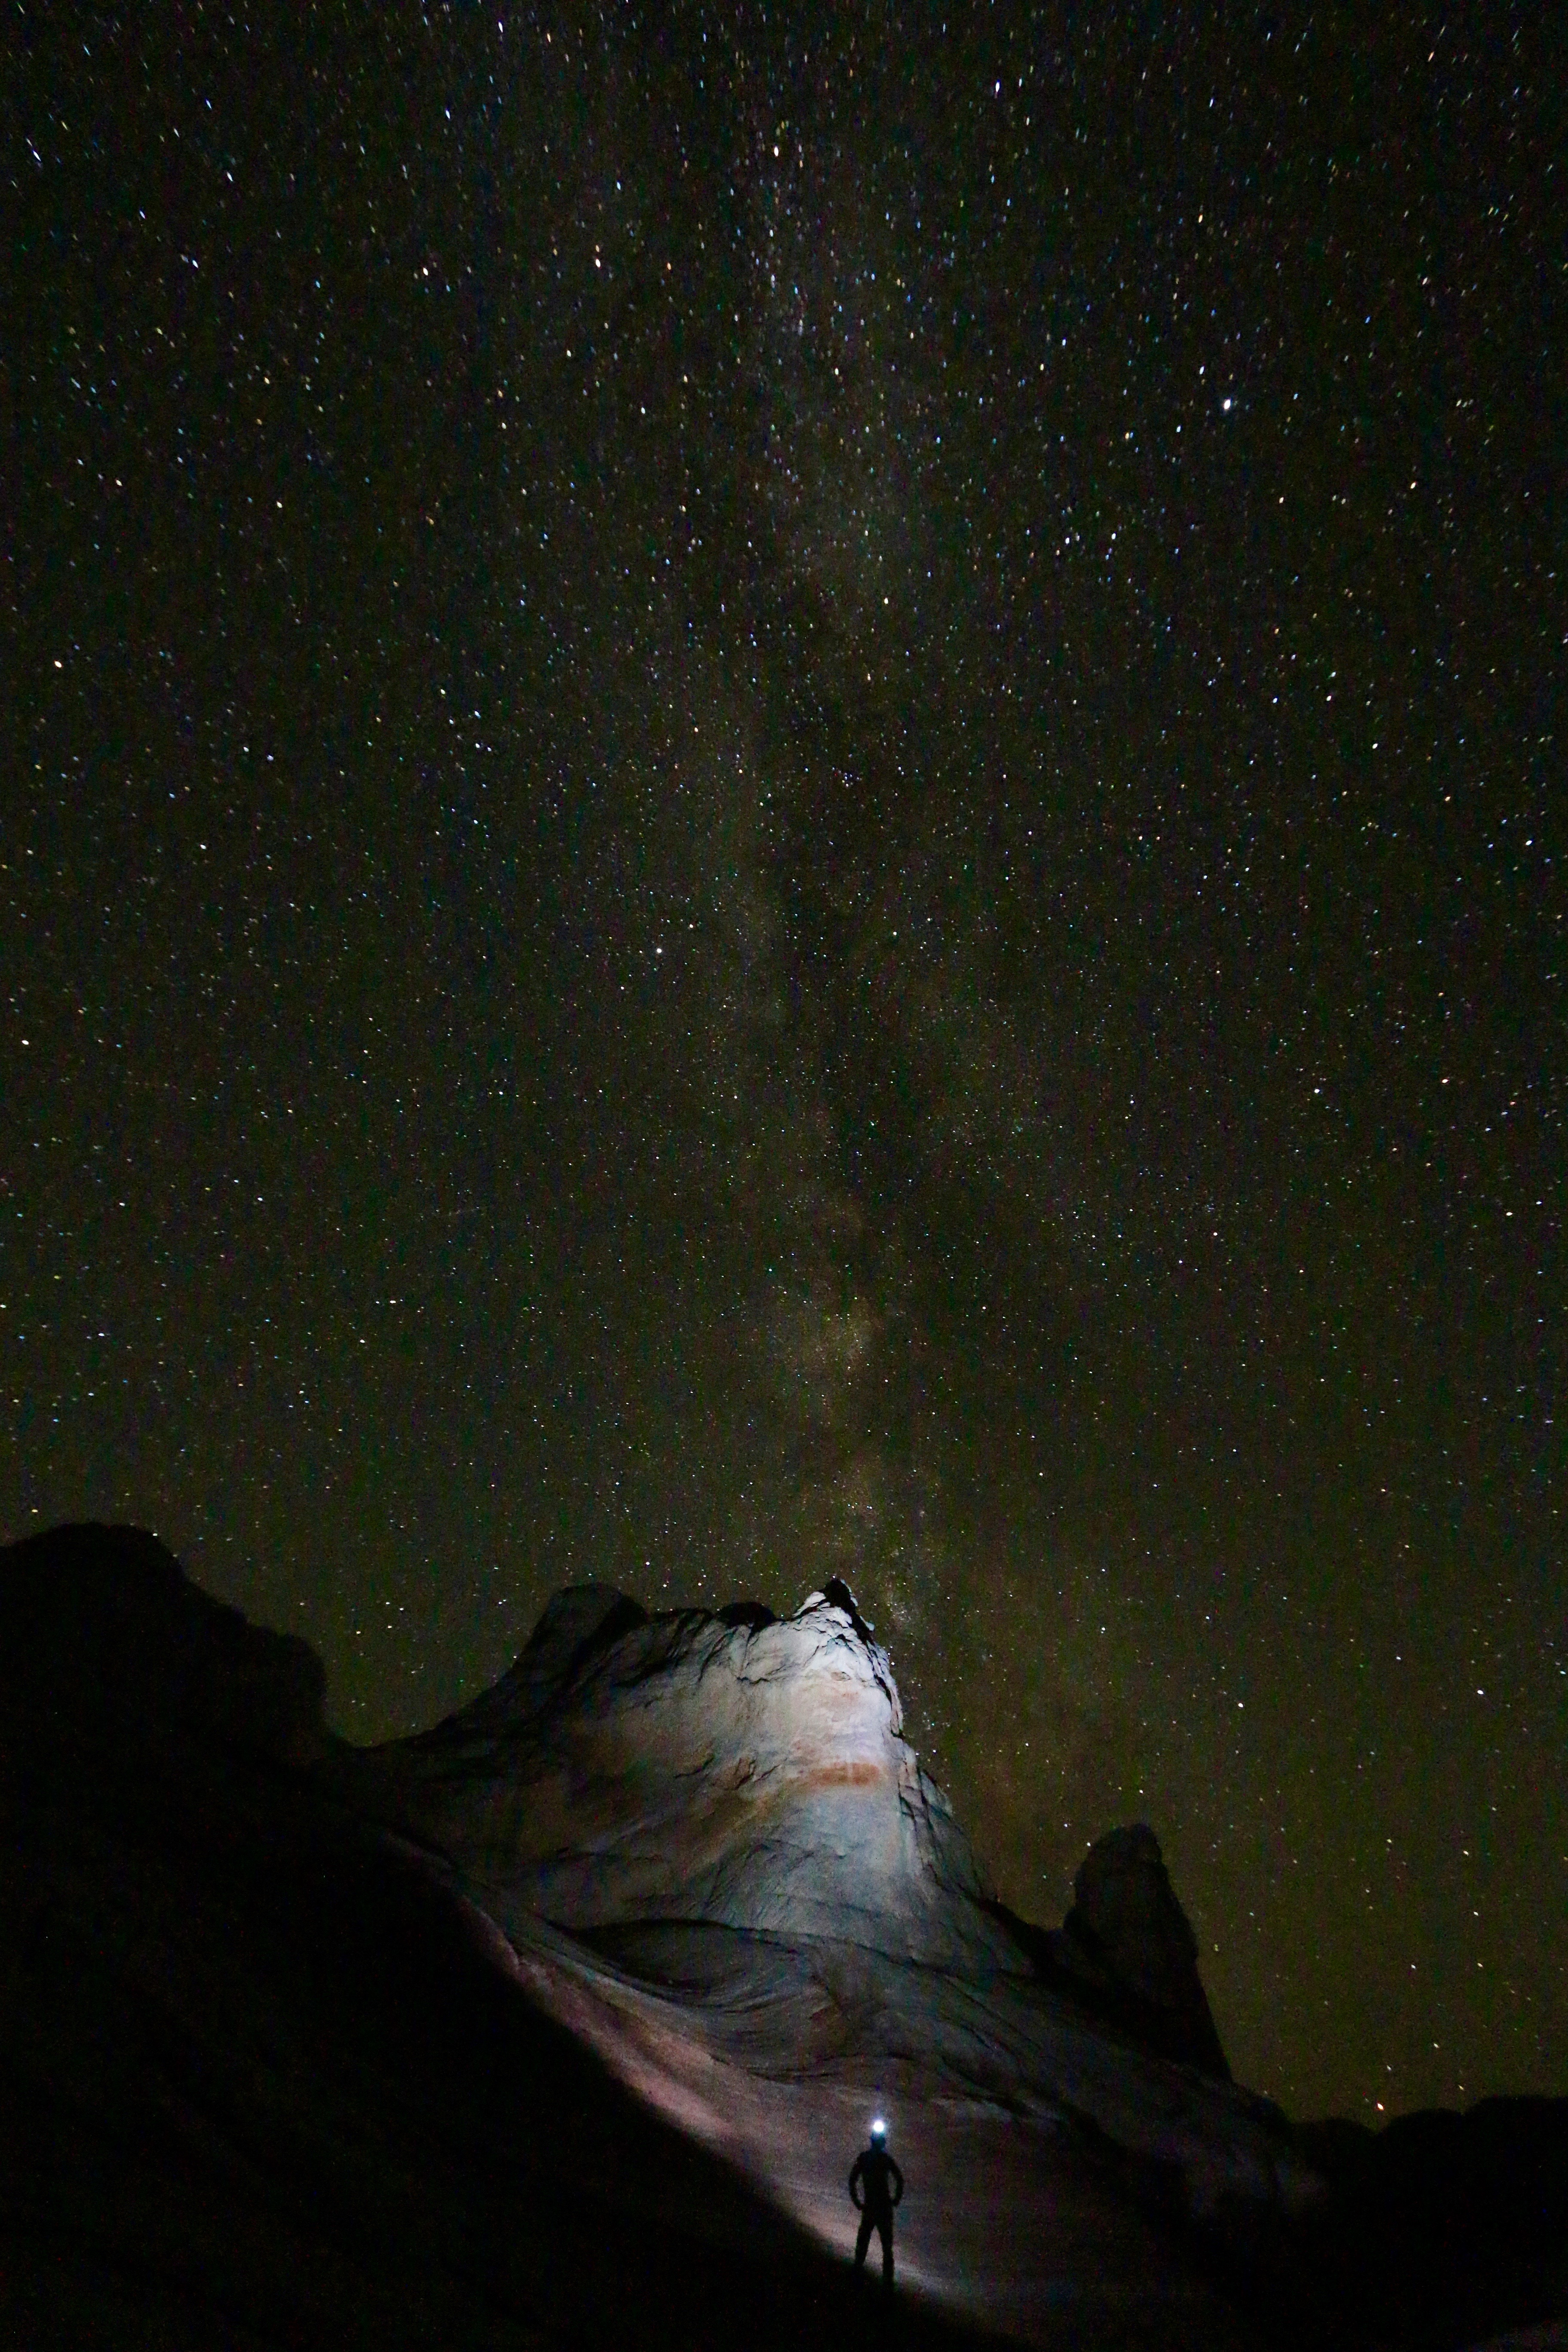 https://www.smithsonianmag.com/photocontest/detail/travel/thee ...